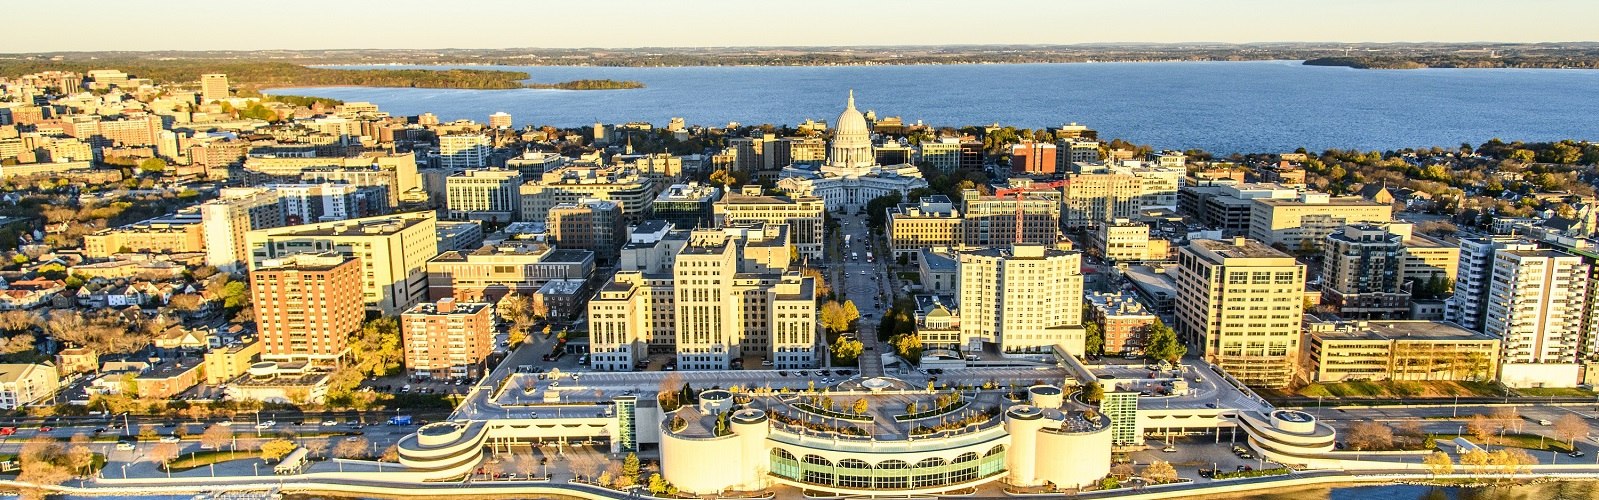 Aerial image of Madison